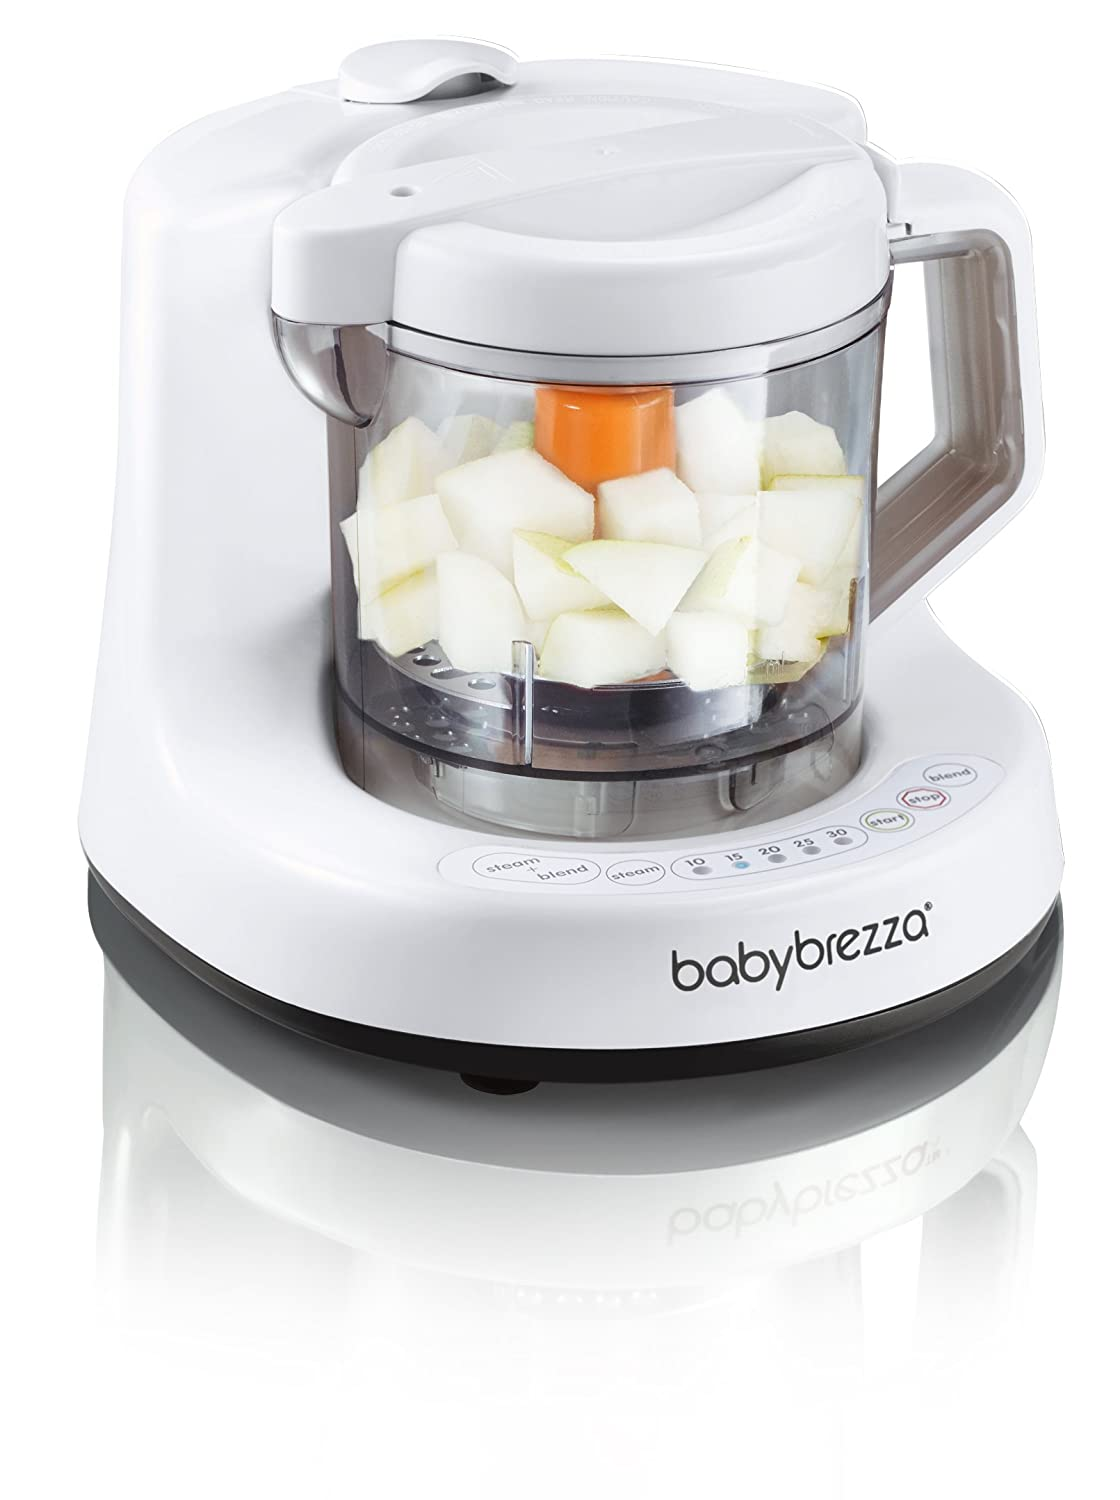 Top 5 Of The Best Baby Food Maker (Find The Right One For Your Baby's Needs !) 26